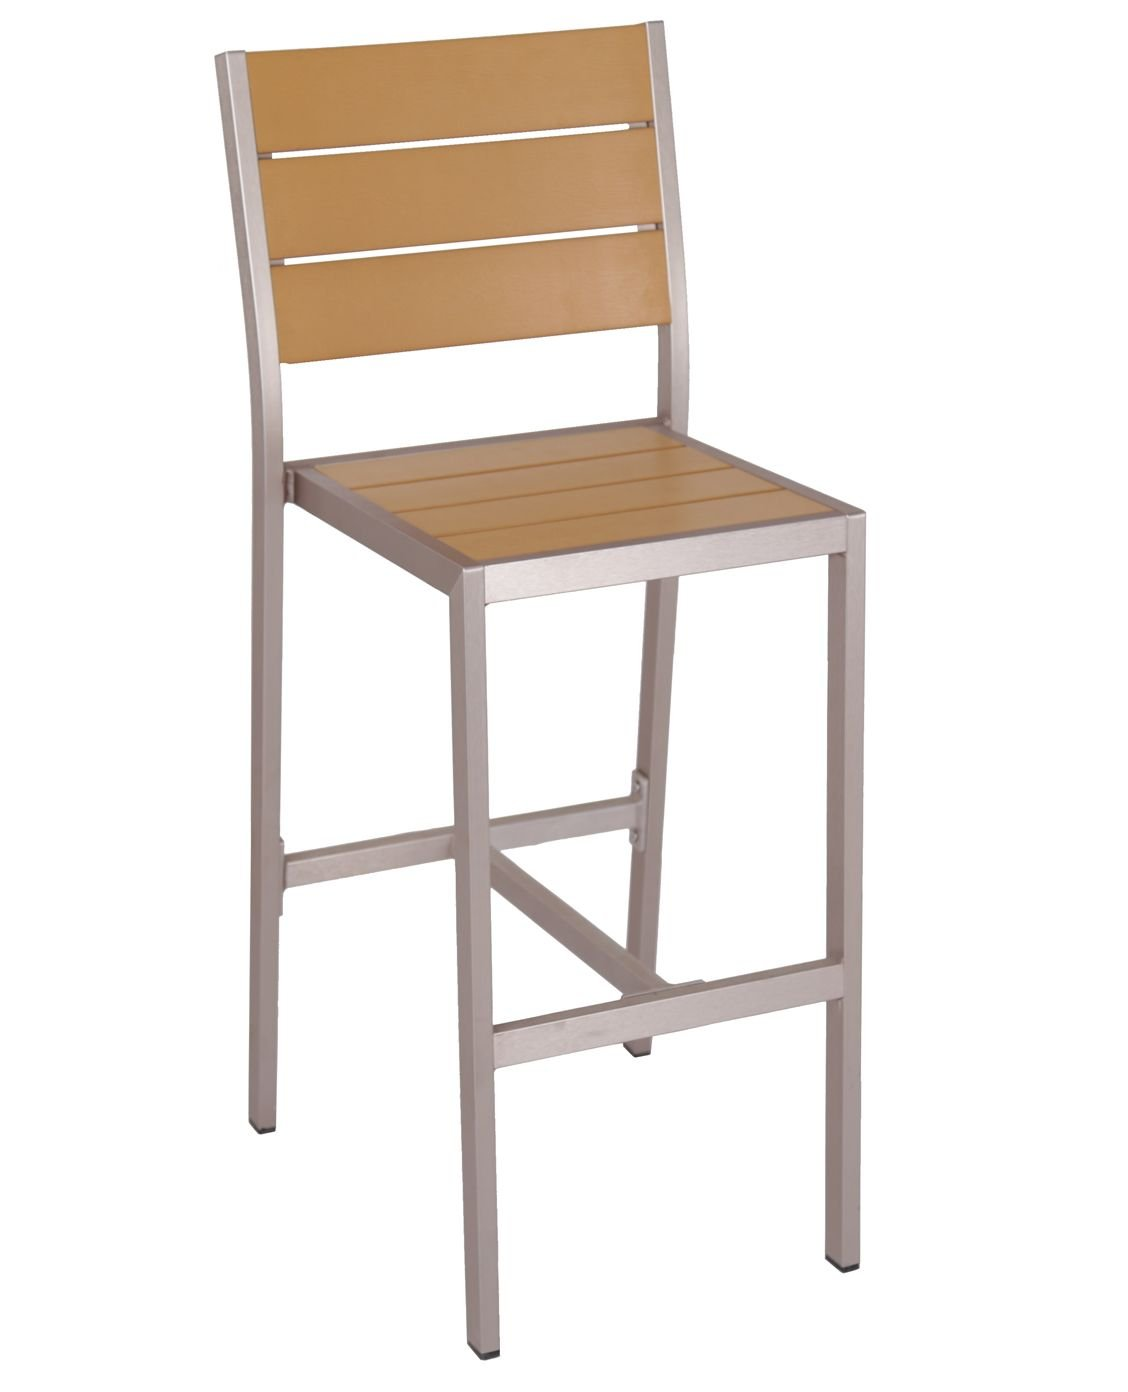 8816 Sol Outdoor Bar Stool Restaurant Commercial Bar